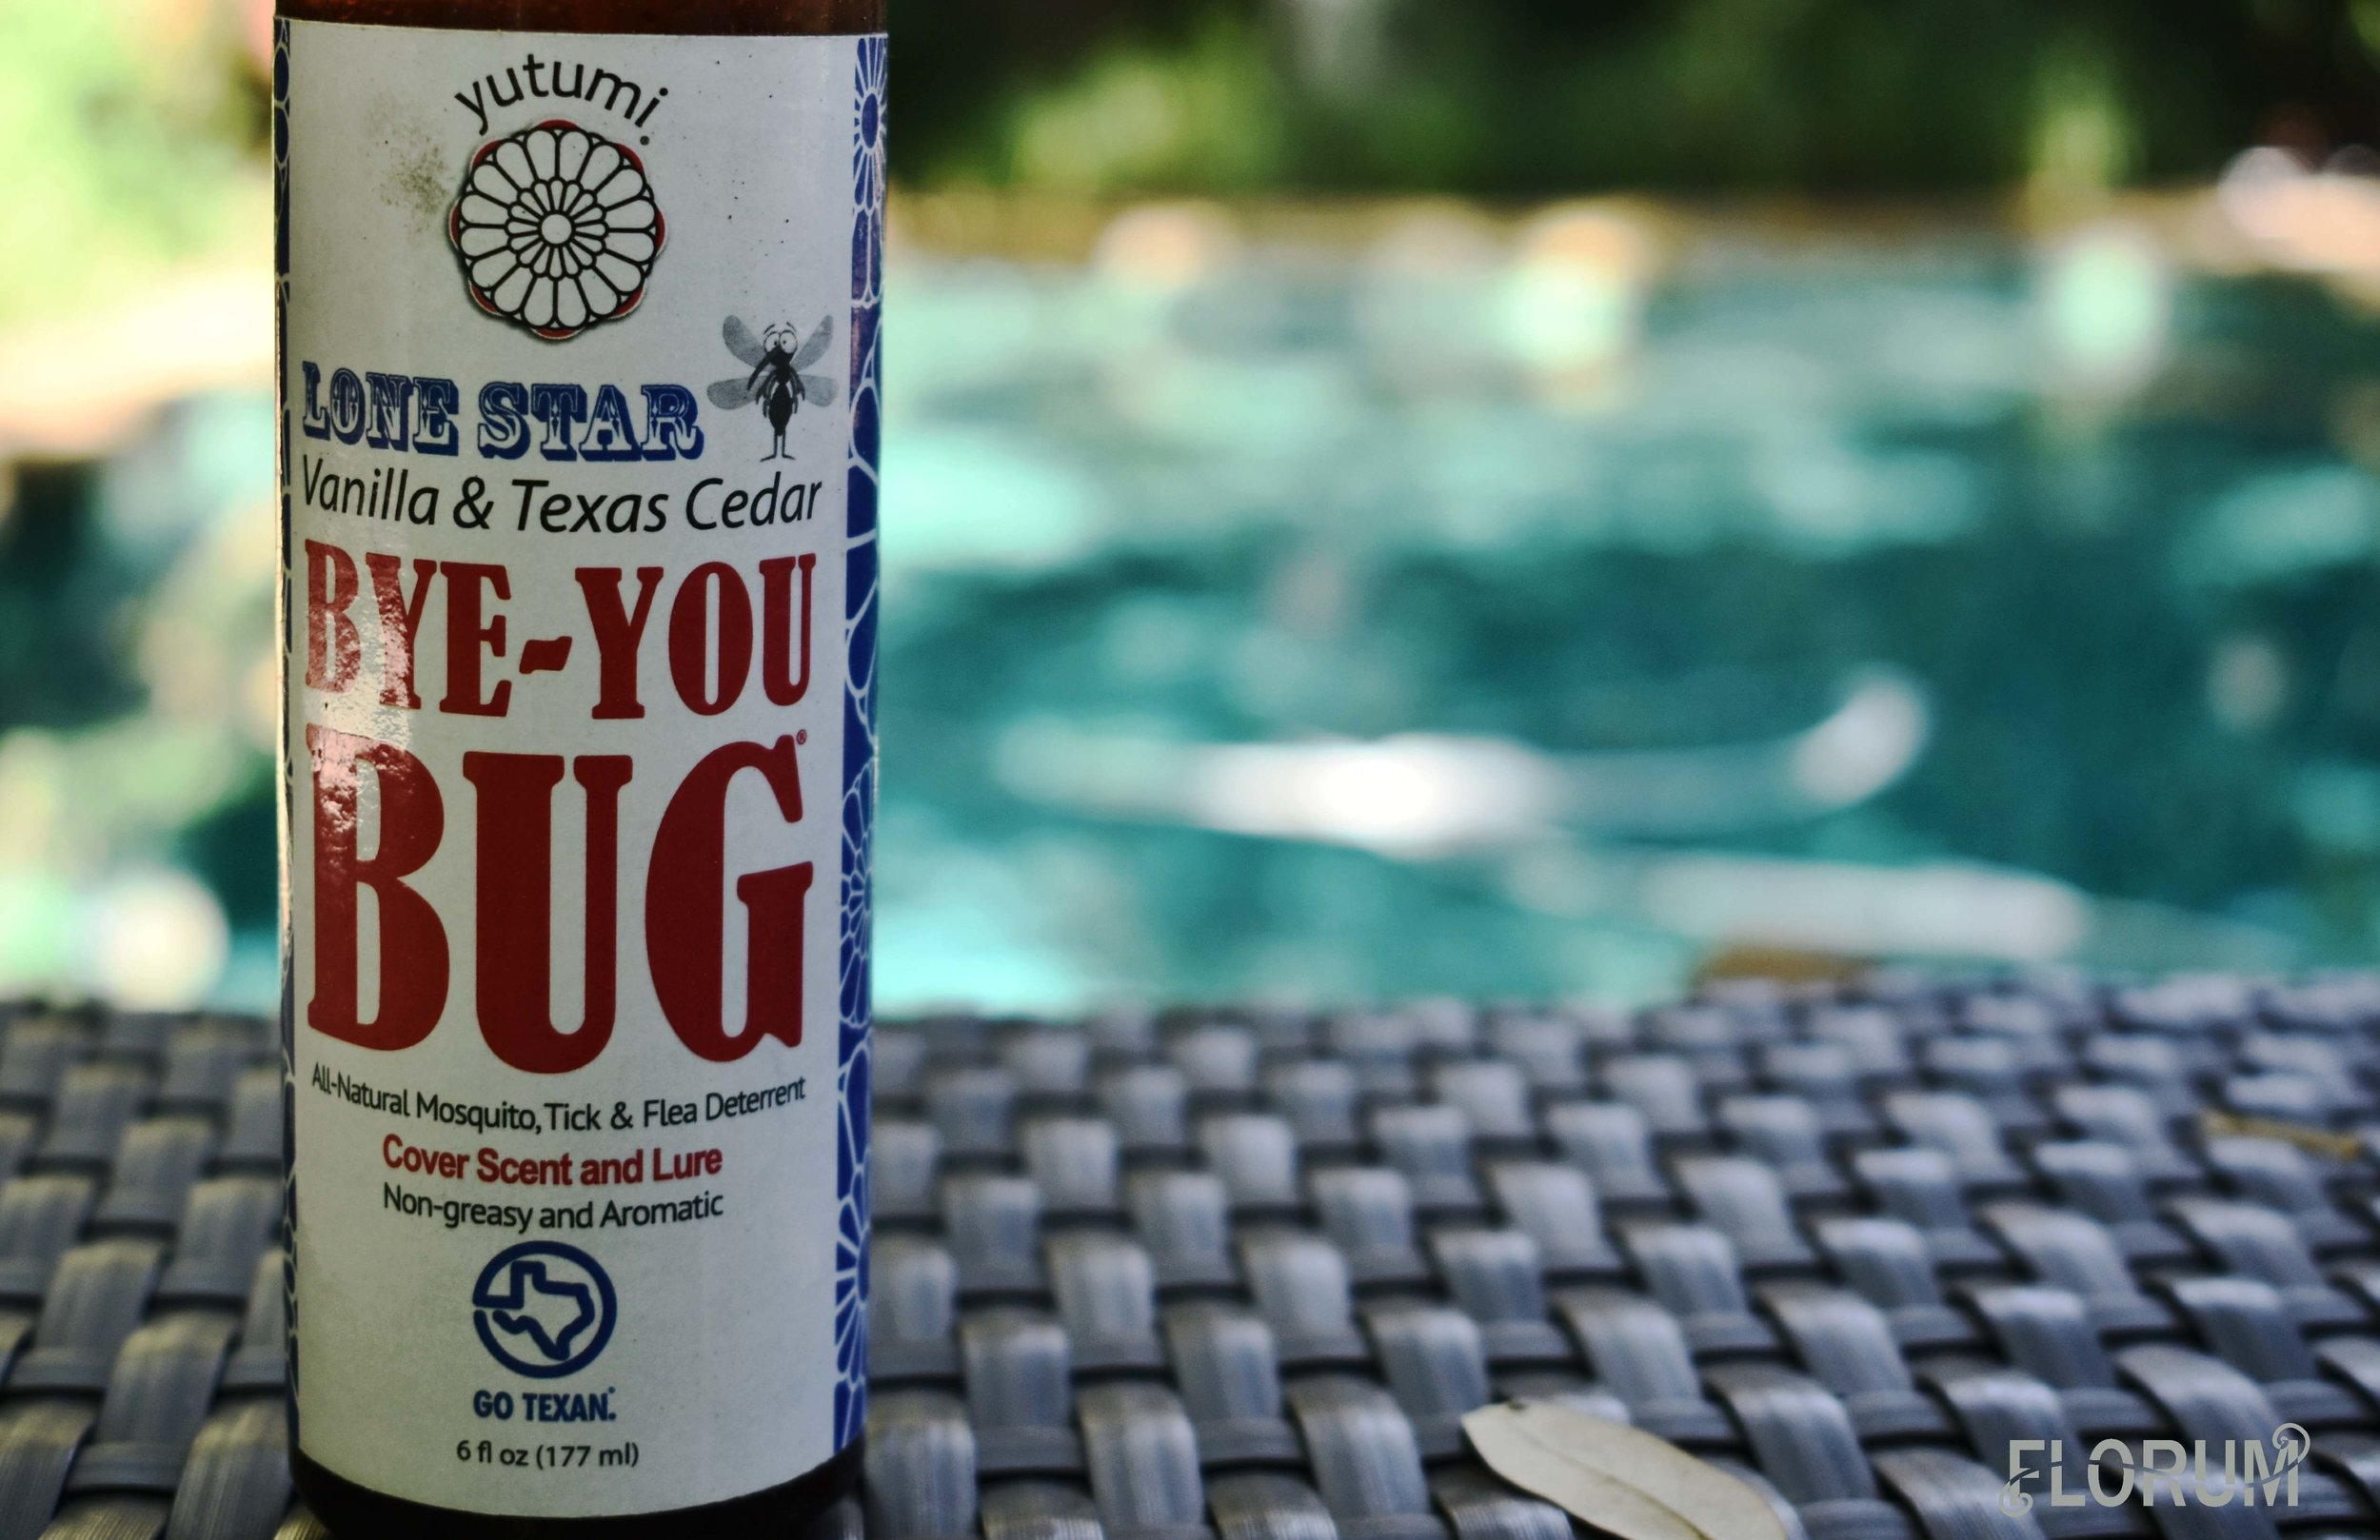 Austin, Texas unfortunately has mosquitos, however I wasn't bit once, since this natural non toxic mosquito repellent was provided by the Park Lane Guest House and left by the pool for guests to use. I loved that the brand Bye You Bug is also Made in Texas, and smelled amazing.